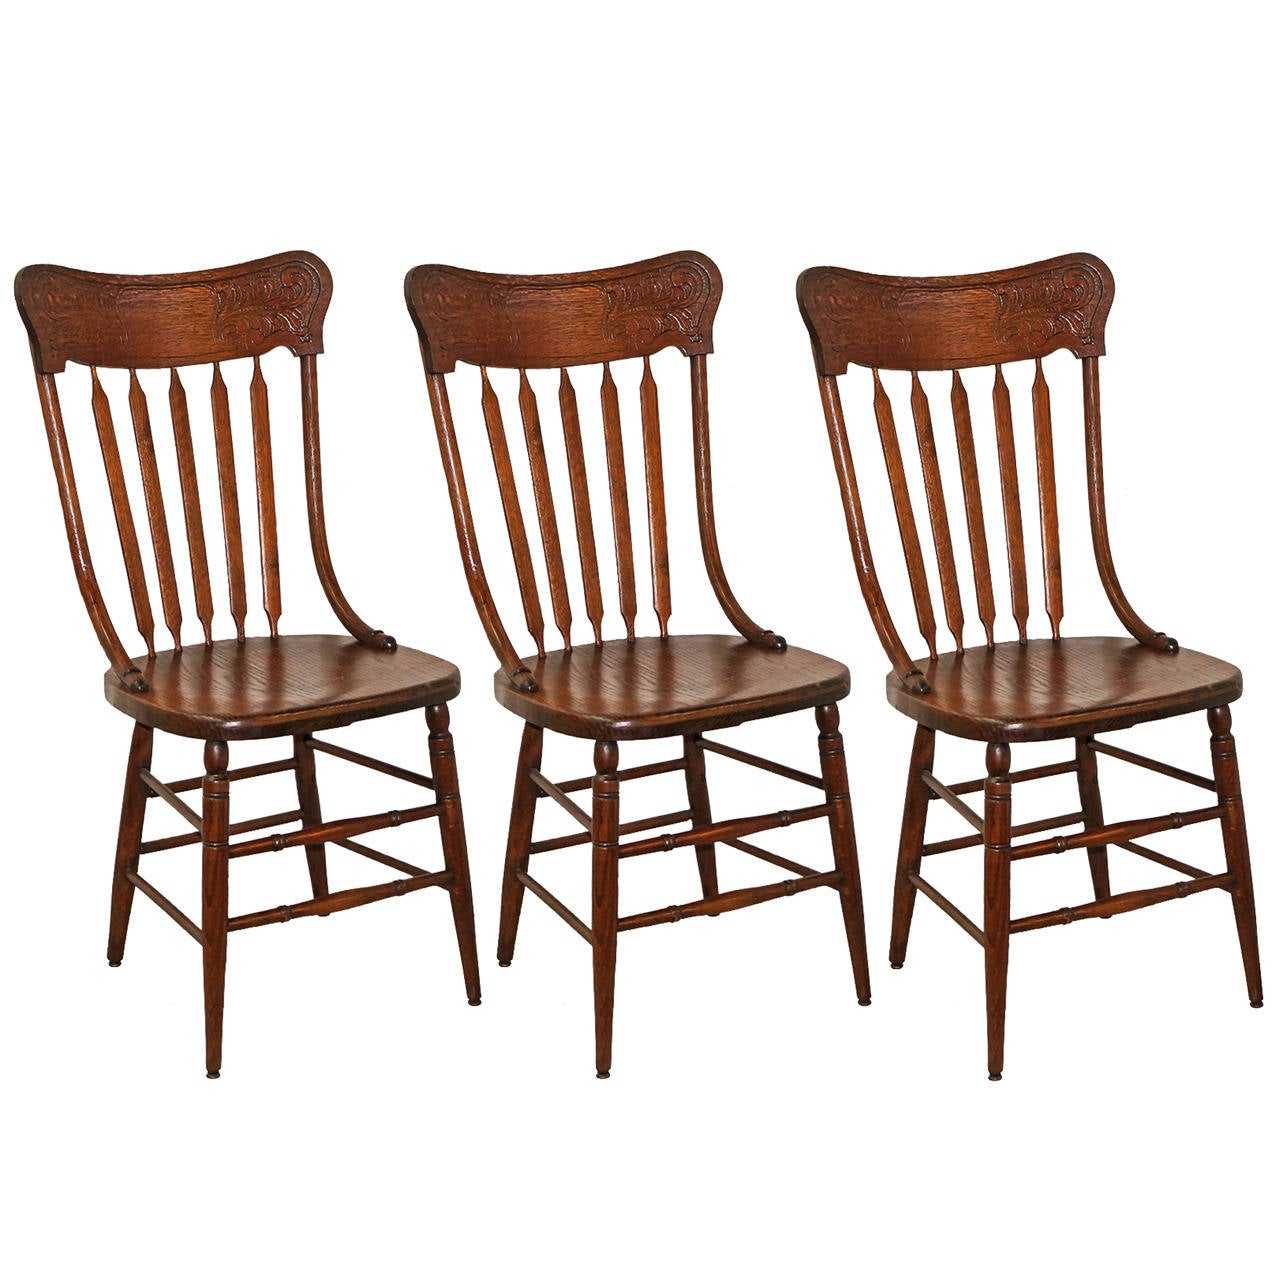 Pressed Back Dining Chairs ~ Oak pressed back chairs for sale at stdibs